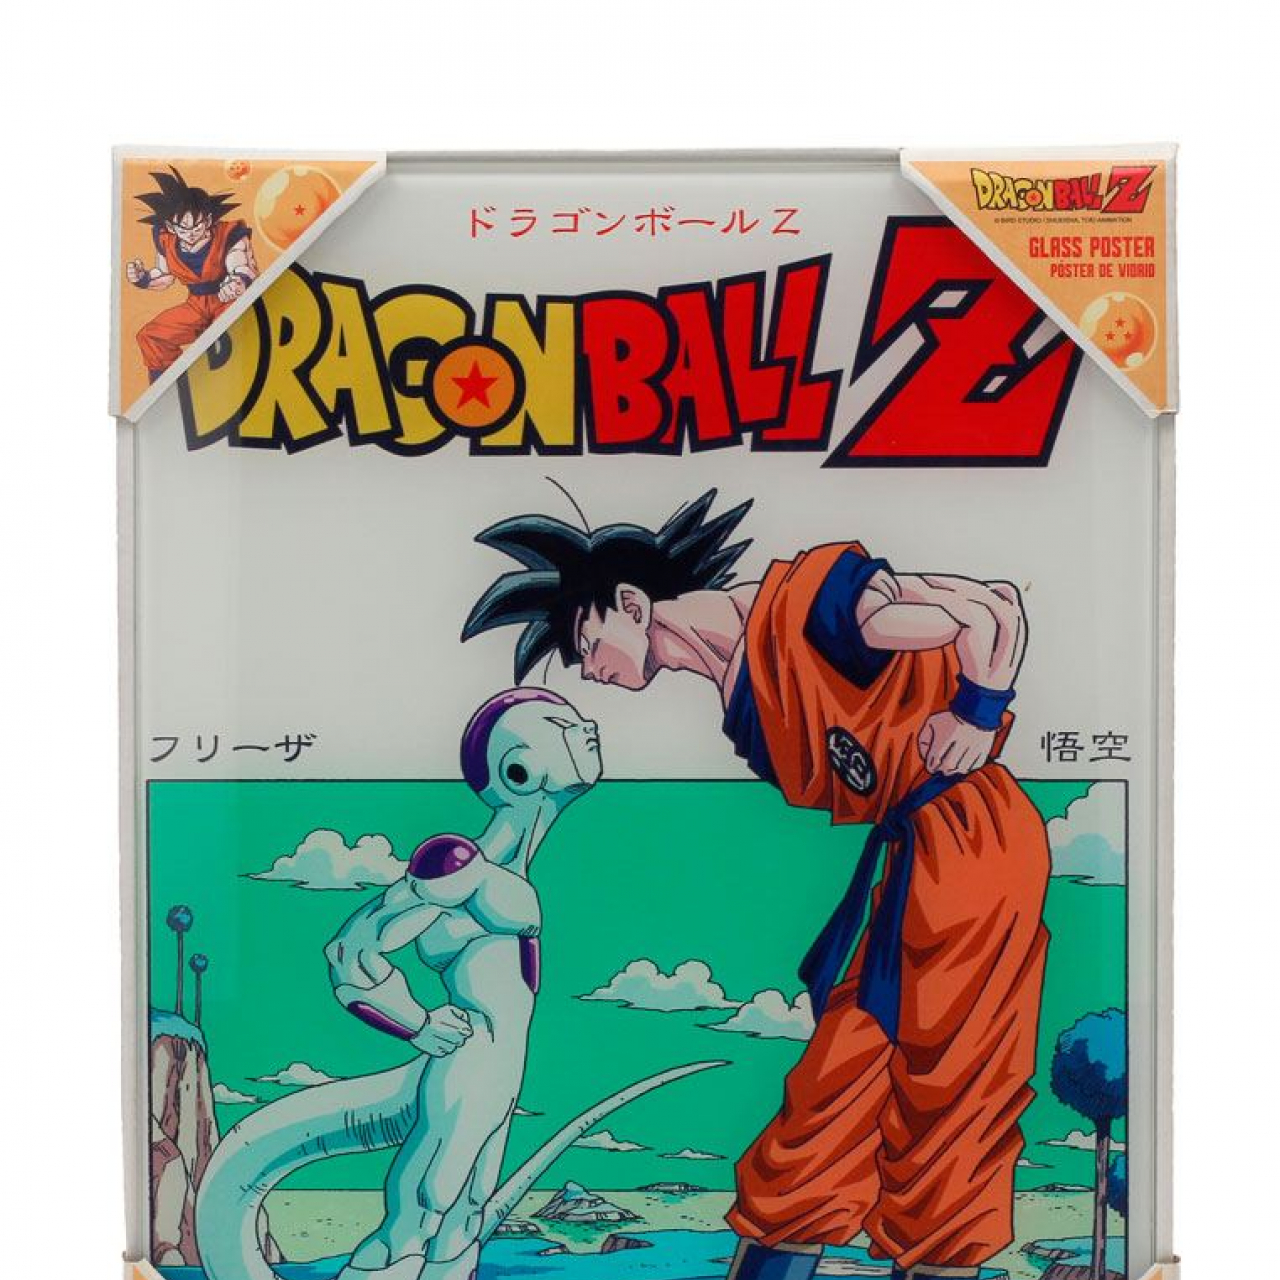 Dragonball Z Glass Poster Freezer 30 x 40 cm